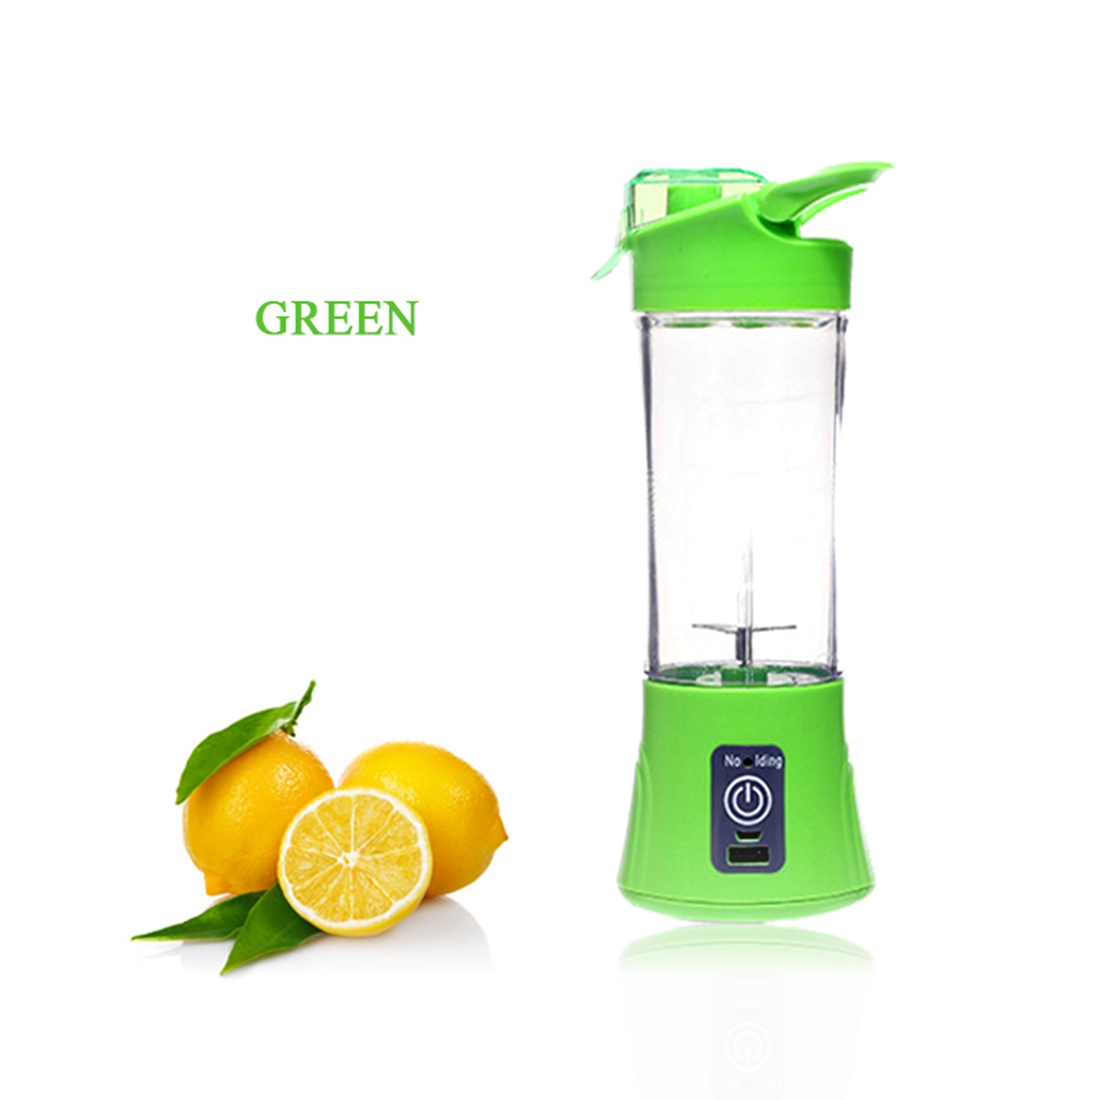 SANQ fashion Rechargeable juicer multi-function electric juice cup home portable juice cup mini fruit juicerSANQ fashion Rechargeable juicer multi-function electric juice cup home portable juice cup mini fruit juicer